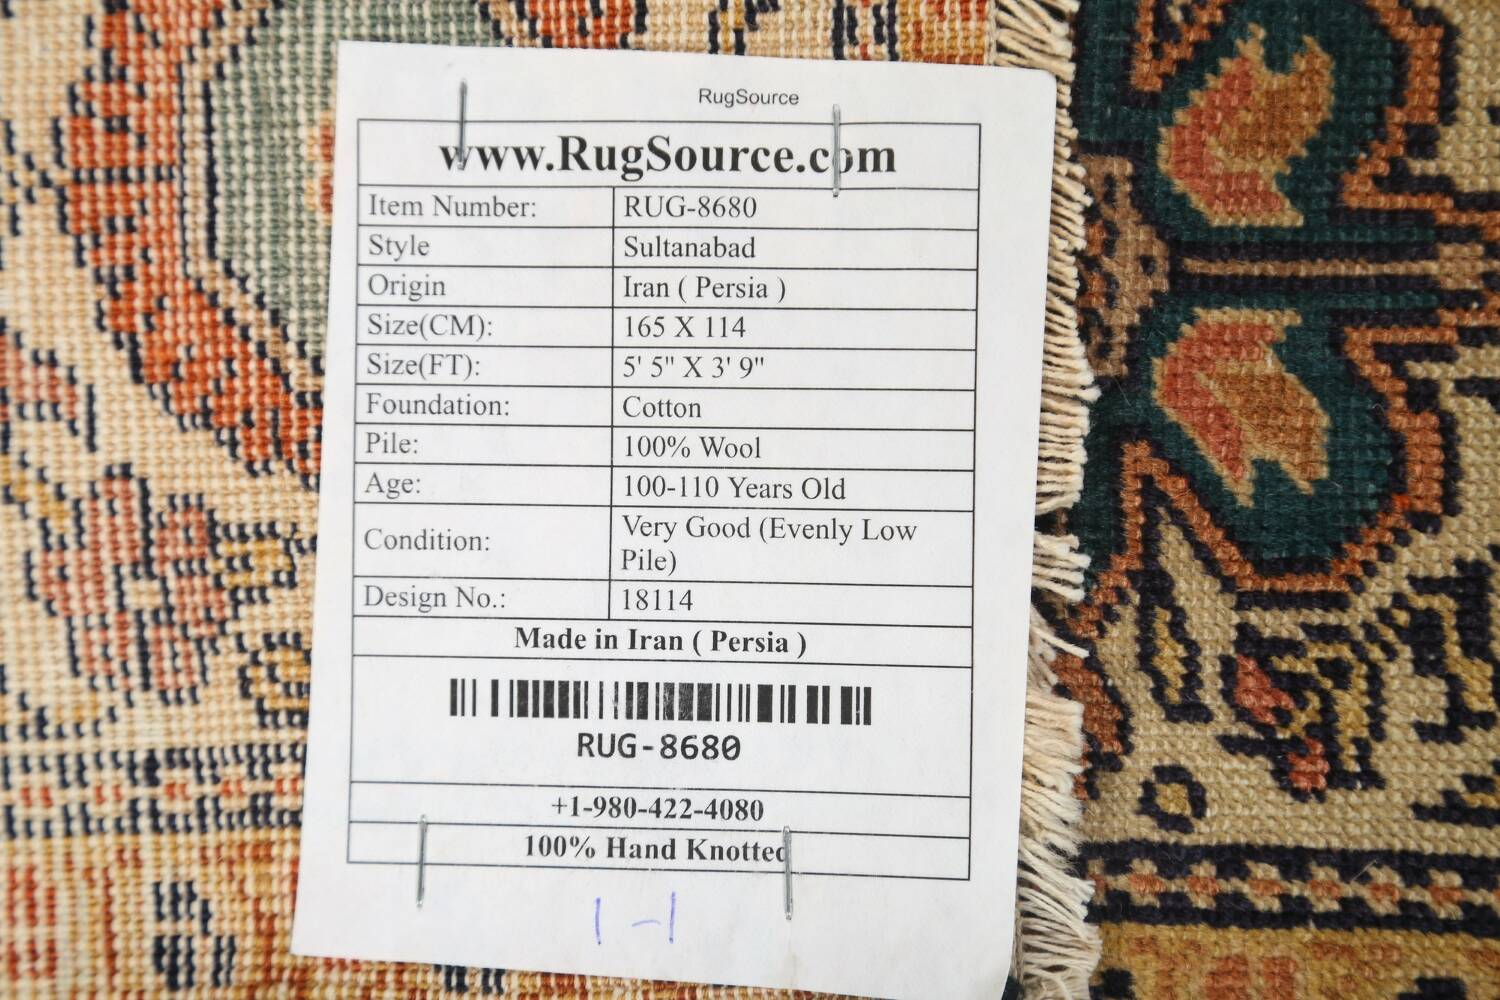 Antique 100% Vegetable Dye Sultanabad Persian Area Rug 4x5 image 19